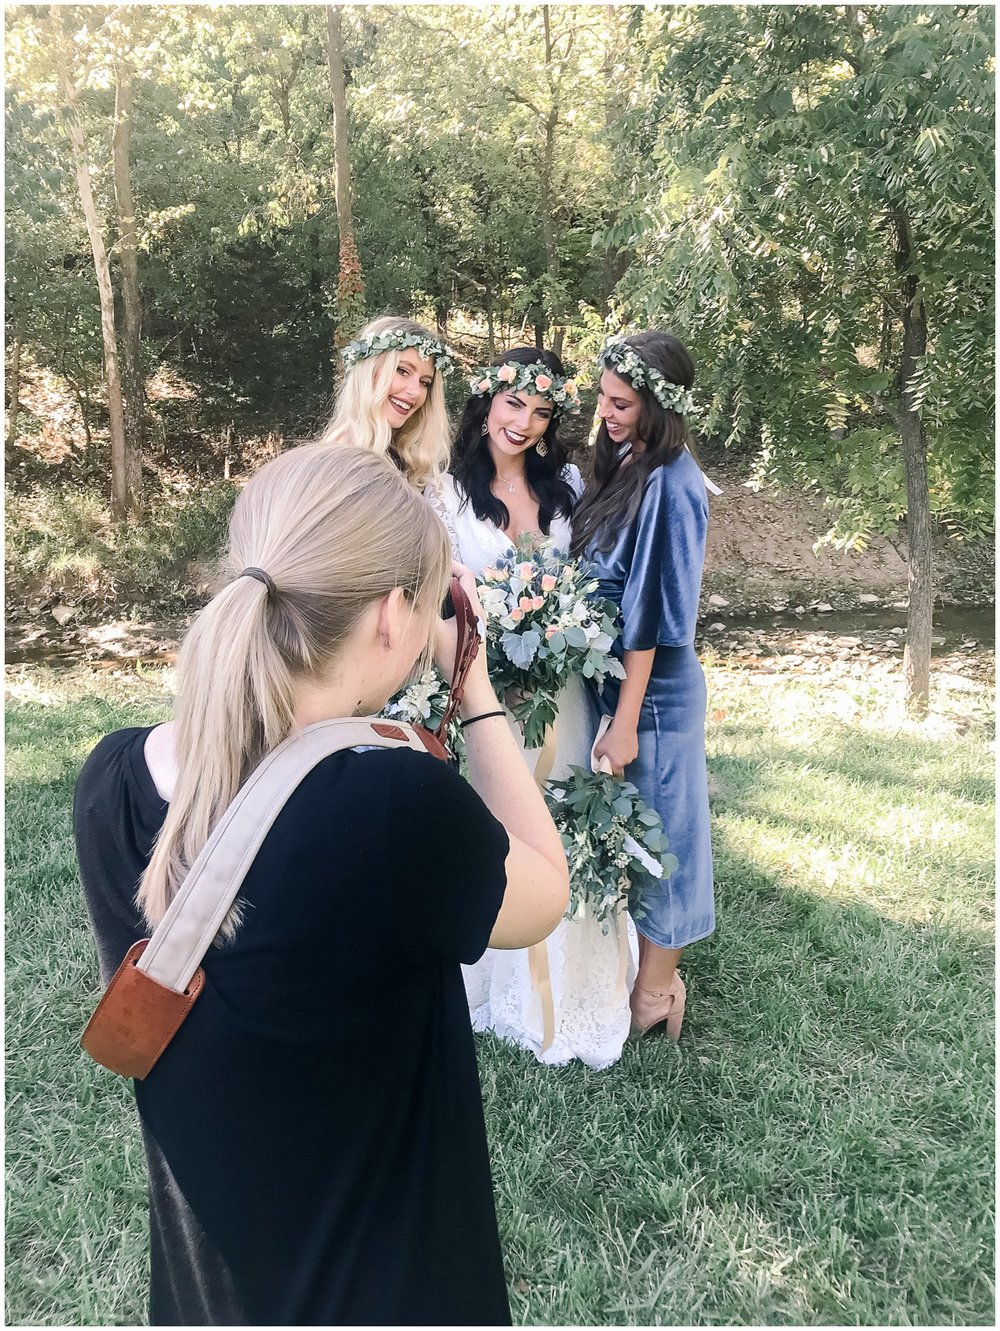 -behind-the-scenes-of-a-wedding-photographer-2018-elizabeth-ladean-photography-photo_3538.jpg